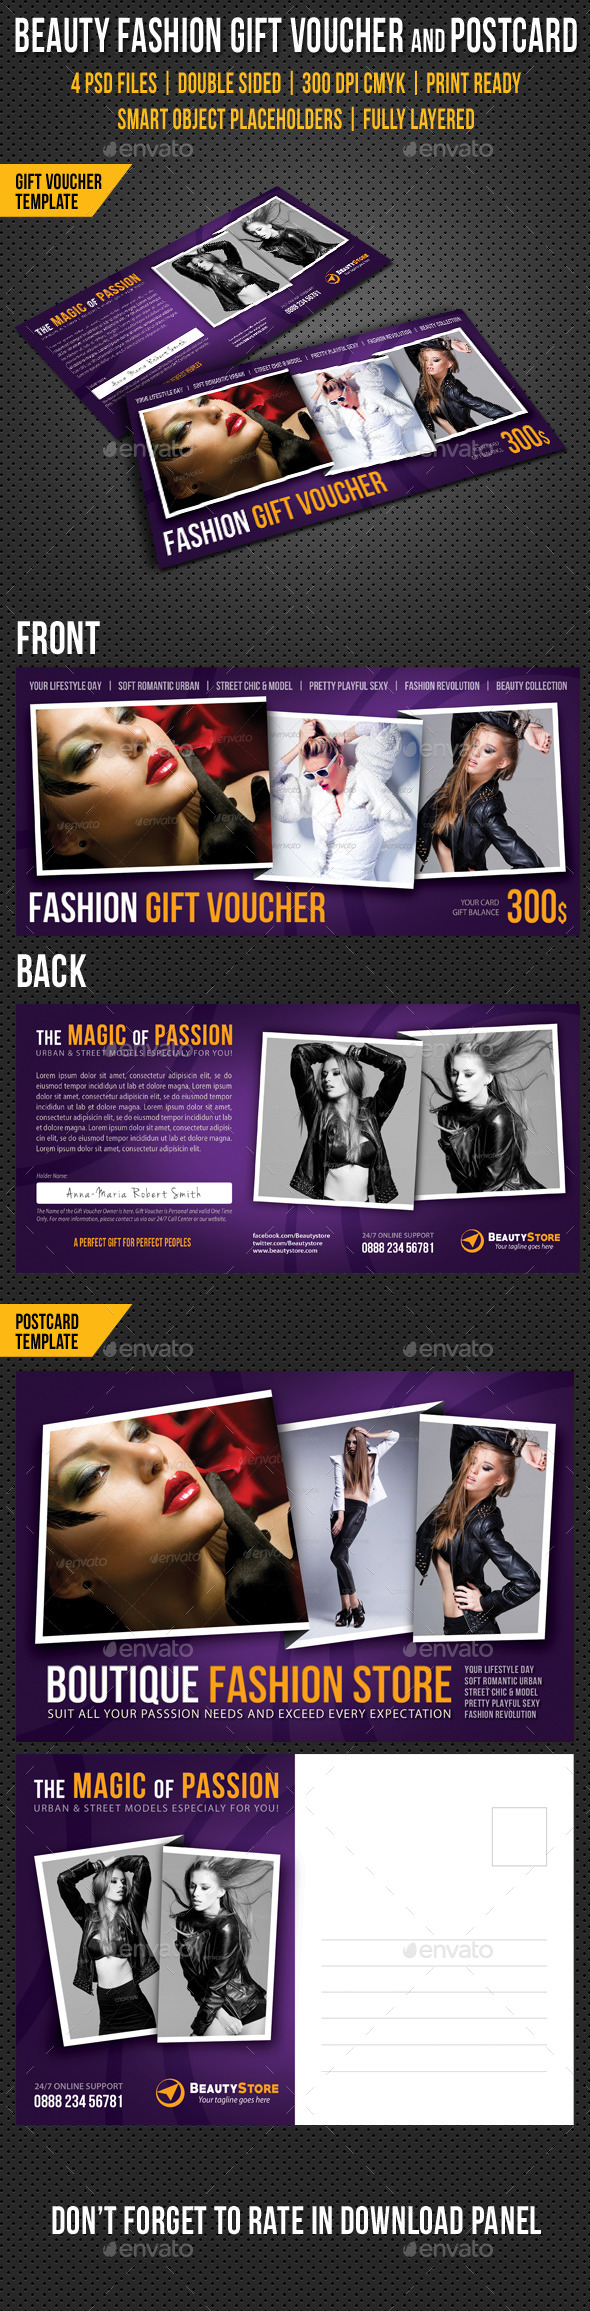 GraphicRiver Beauty Fashion Gift Voucher and Postcard V04 10163788